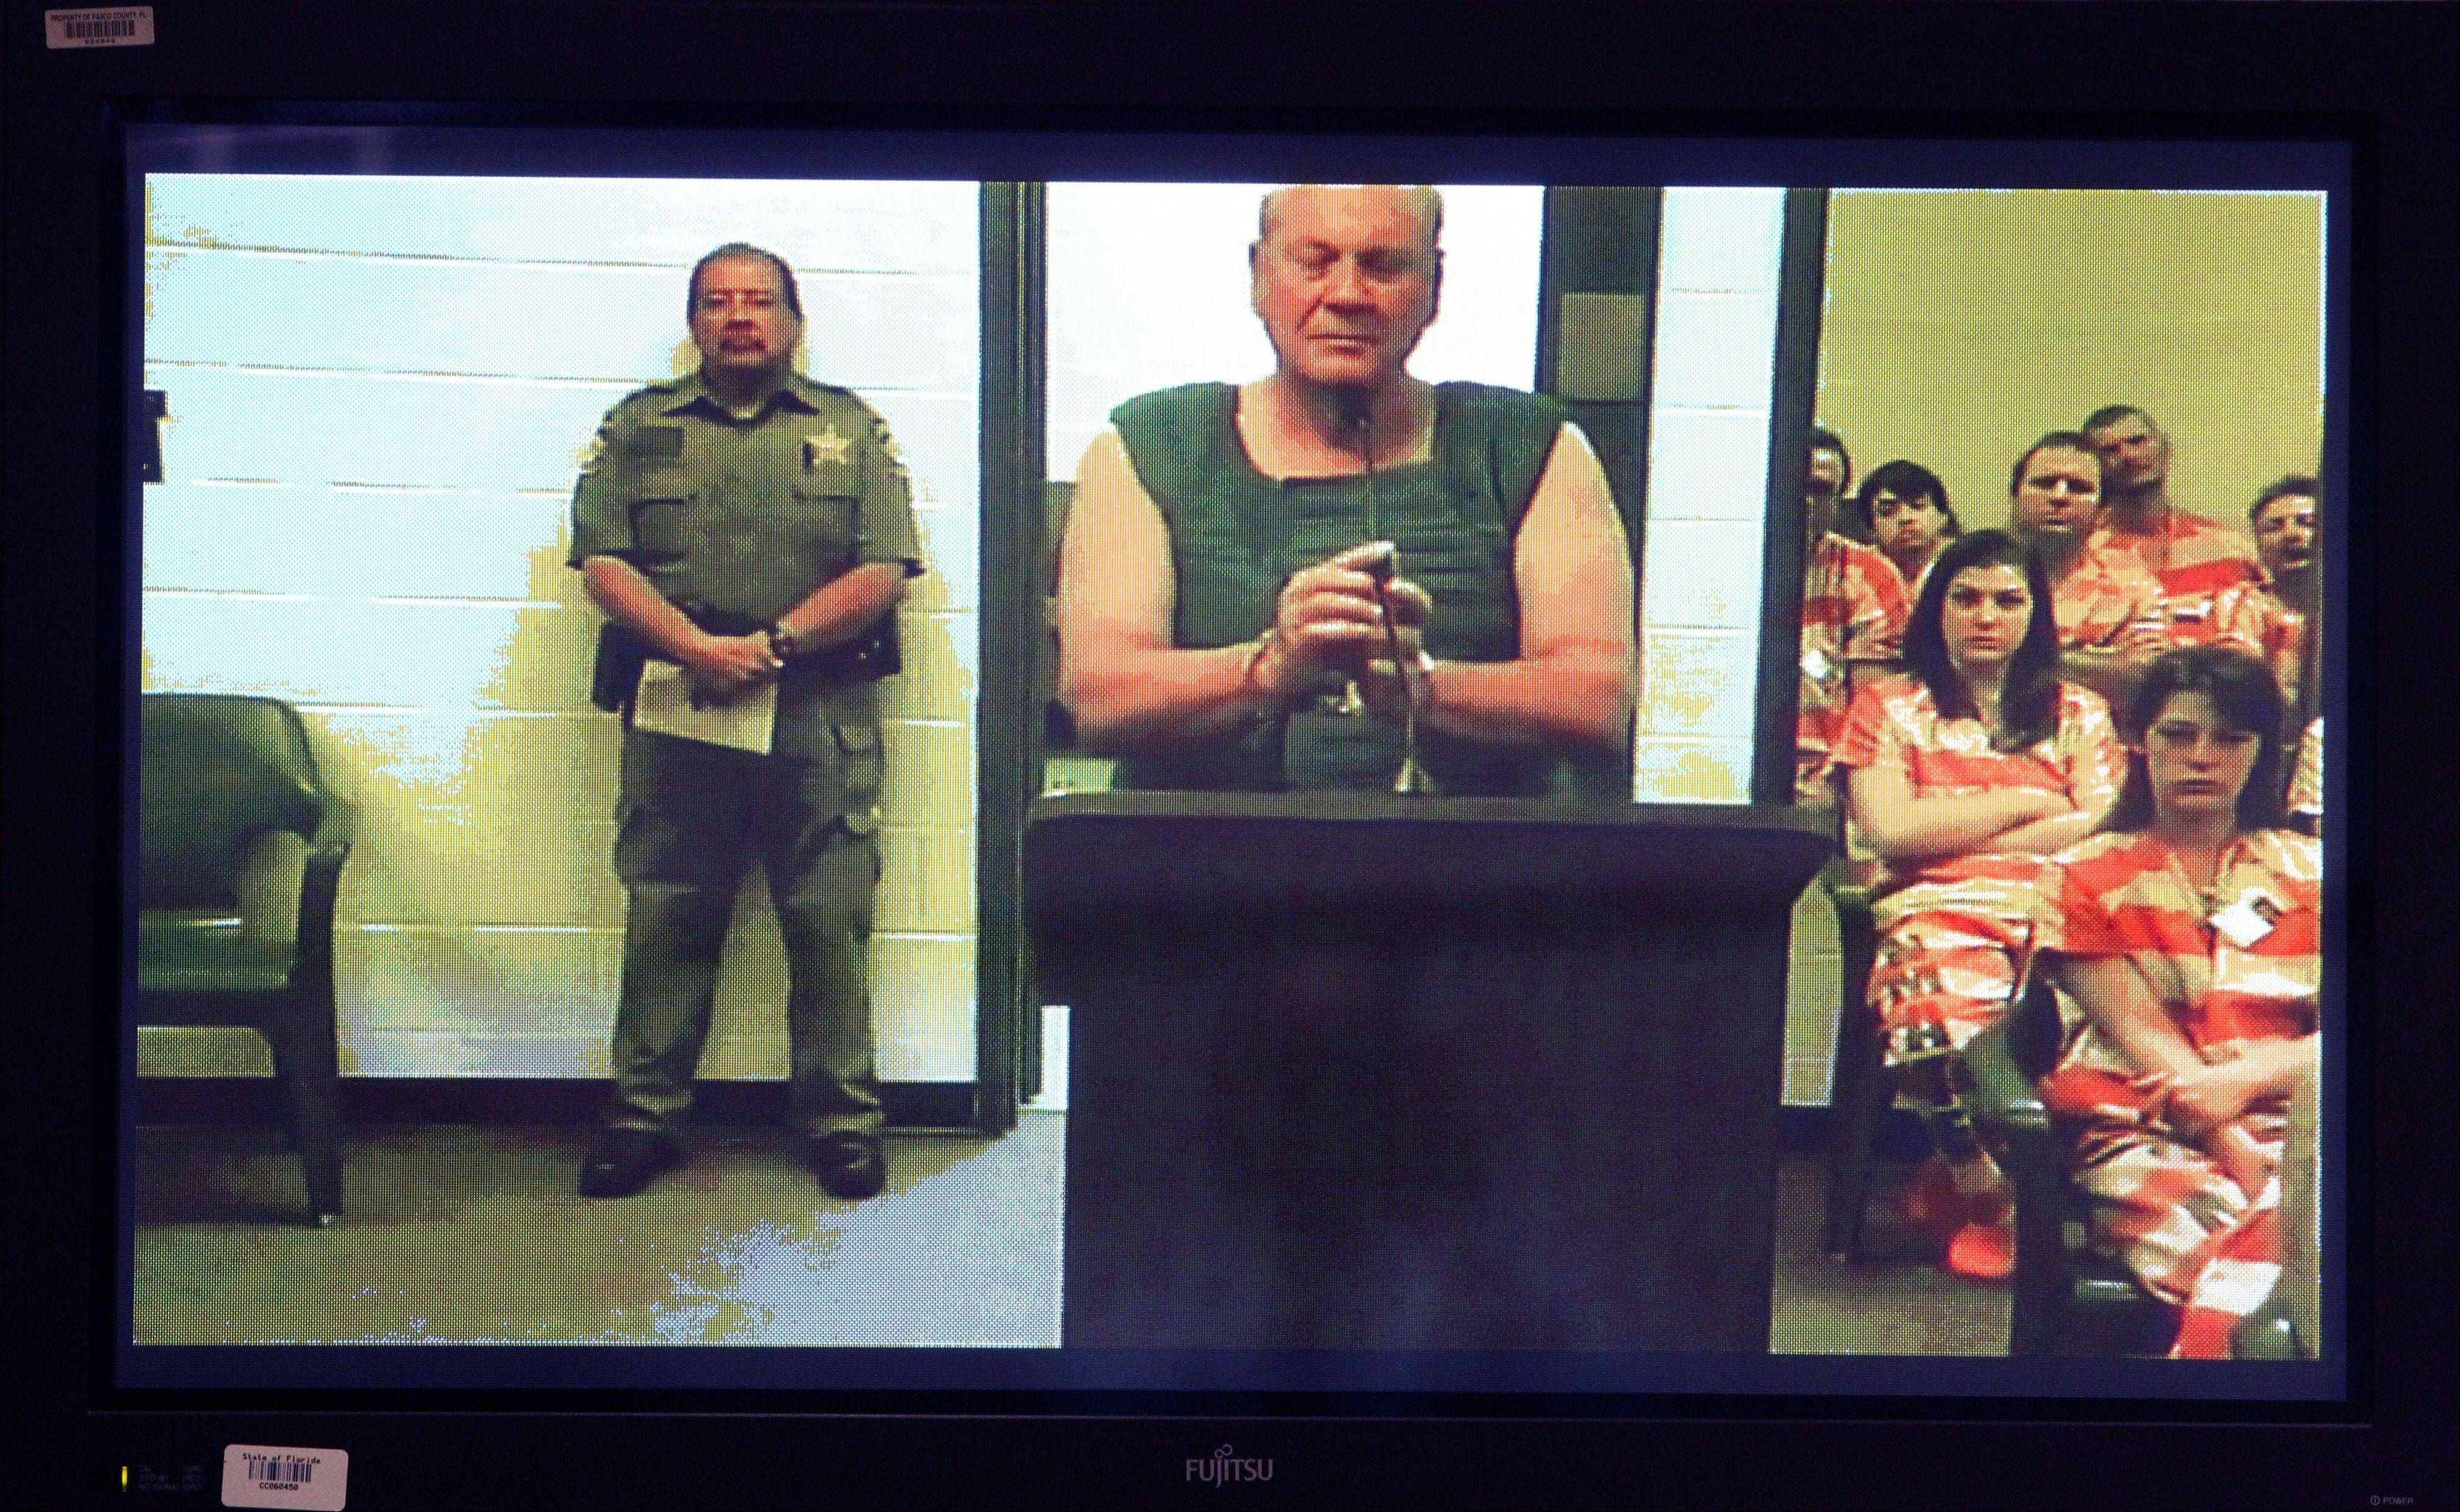 Curtis Reeves appears via video conference before Circuit Judge Lynn Tepper in Wesley Chapel, Fla. on Tuesday, Jan. 14, 2014. Tepper ordered Reeves, 71, held without bond on a charge of second-degree murder in the death of 43-year-old Chad Oulson on Monday. An argument over texting in a movie theater ended with Reeves, a retired police captain fatally shooting Oulson, authorities said.